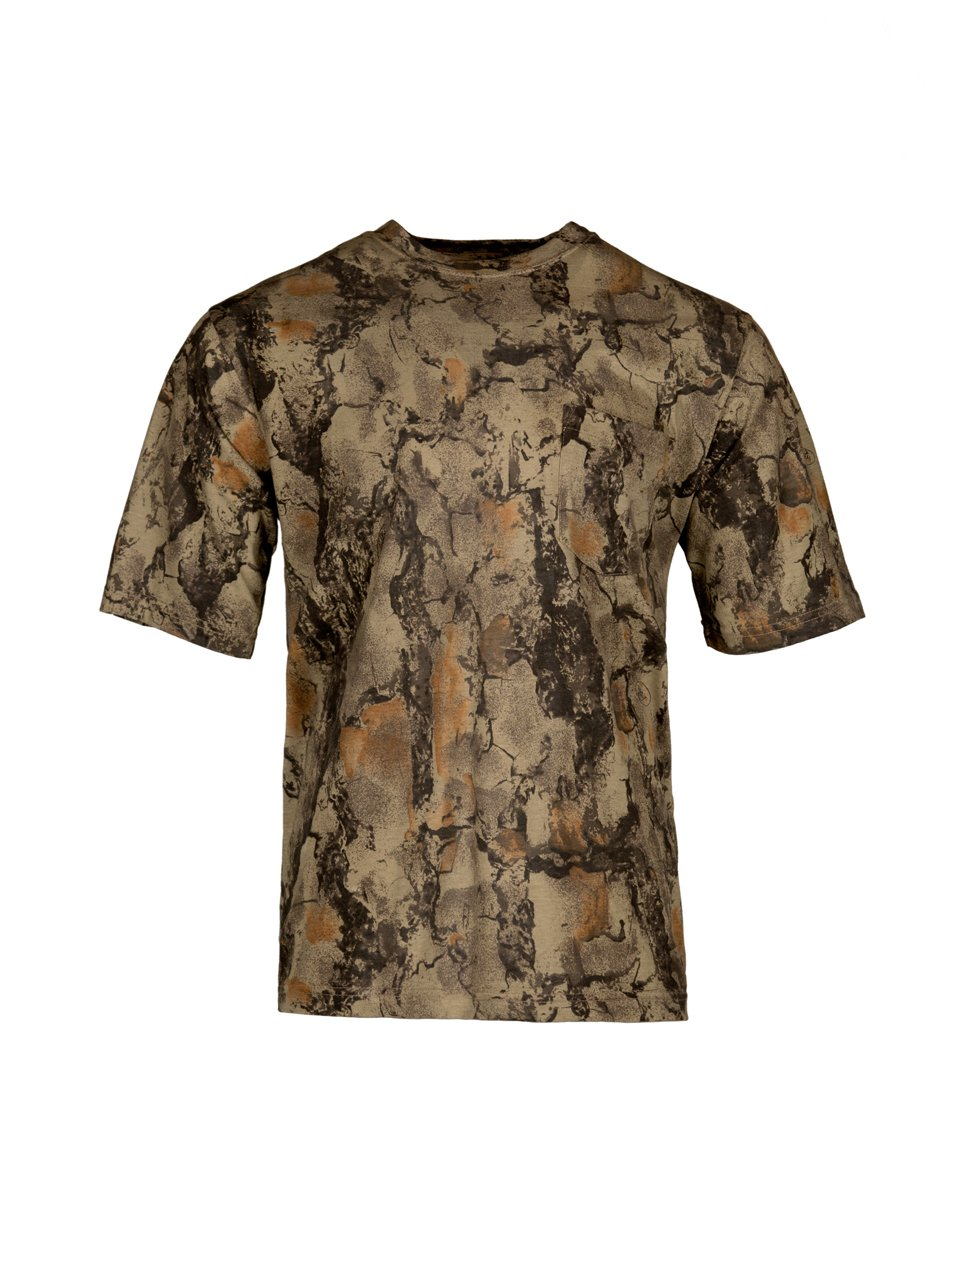 67a8eaff9fd39 COTTON/POLY T-SHIRT: Our Natural Gear camo shirt is made out of a cotton/poly  blend material that is lightweight and breathable.